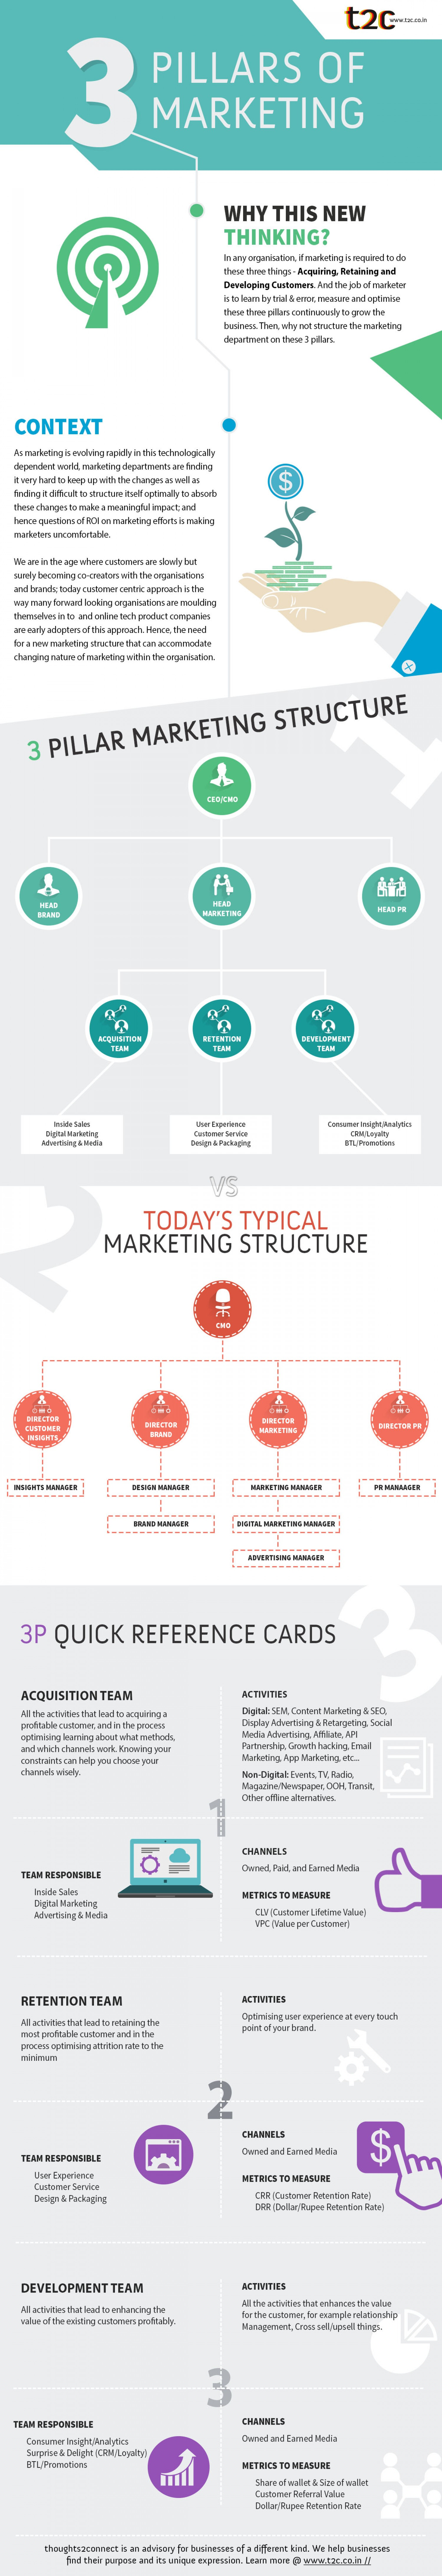 3 Pillars of Marketing